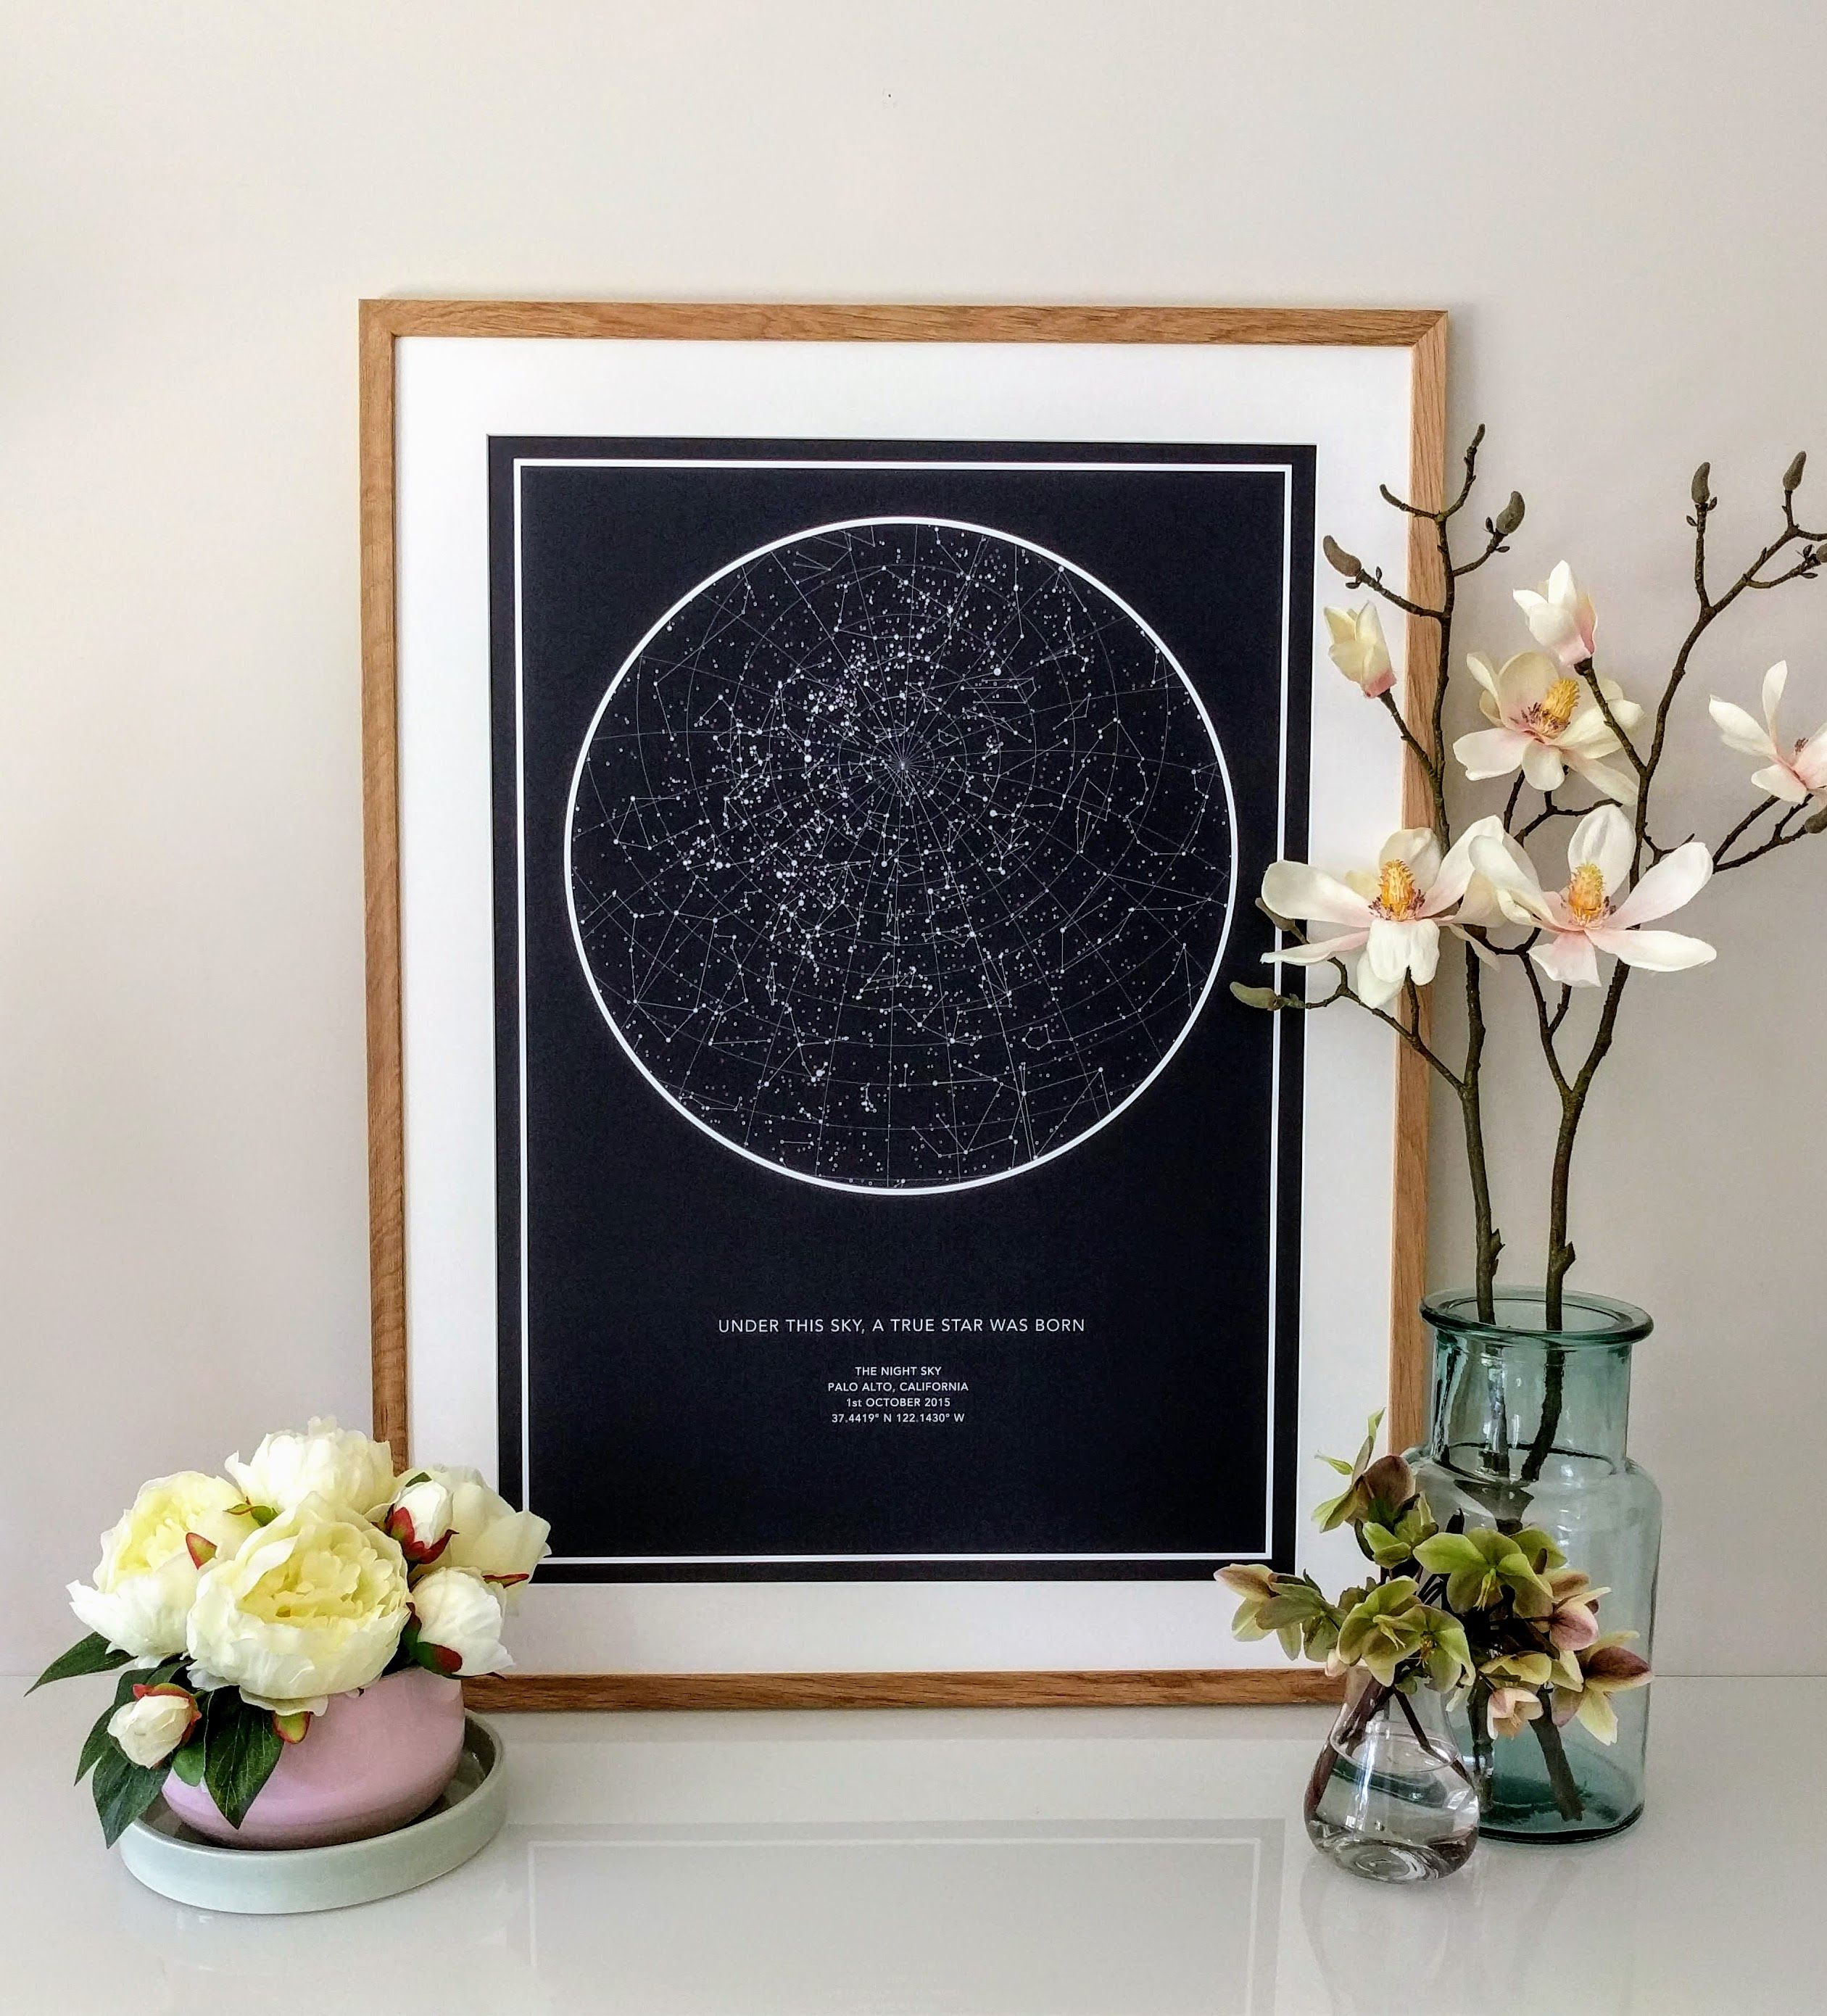 A Star Map Of The Night Your Heart Skipped A Beat Art Pinterest - Night sky map now